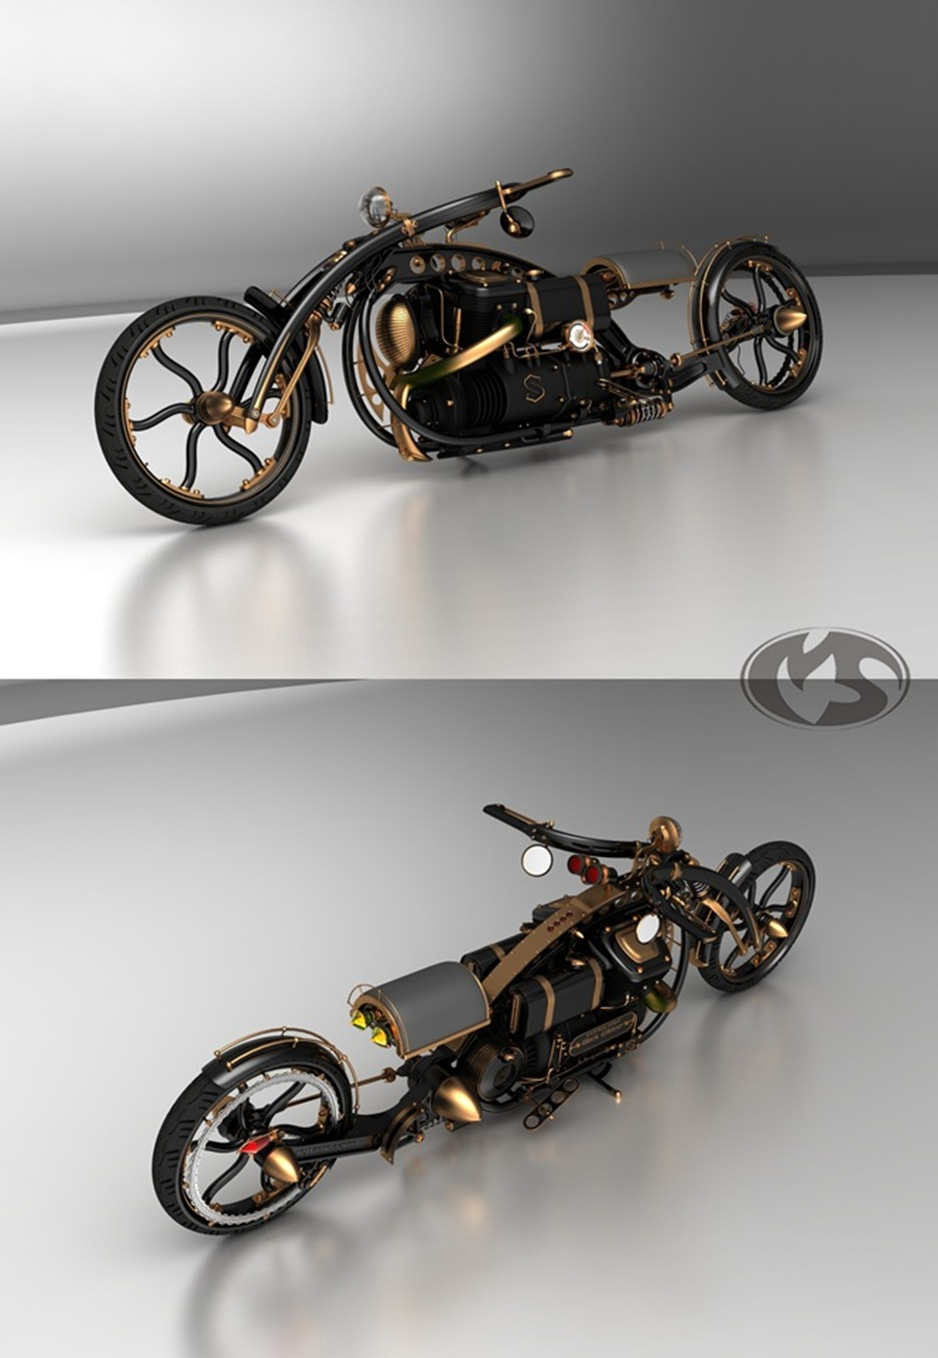 steampunkmotorcycletop thumb1 9 Seriously Sick Sleds by Solif: Creative Custom Choppers